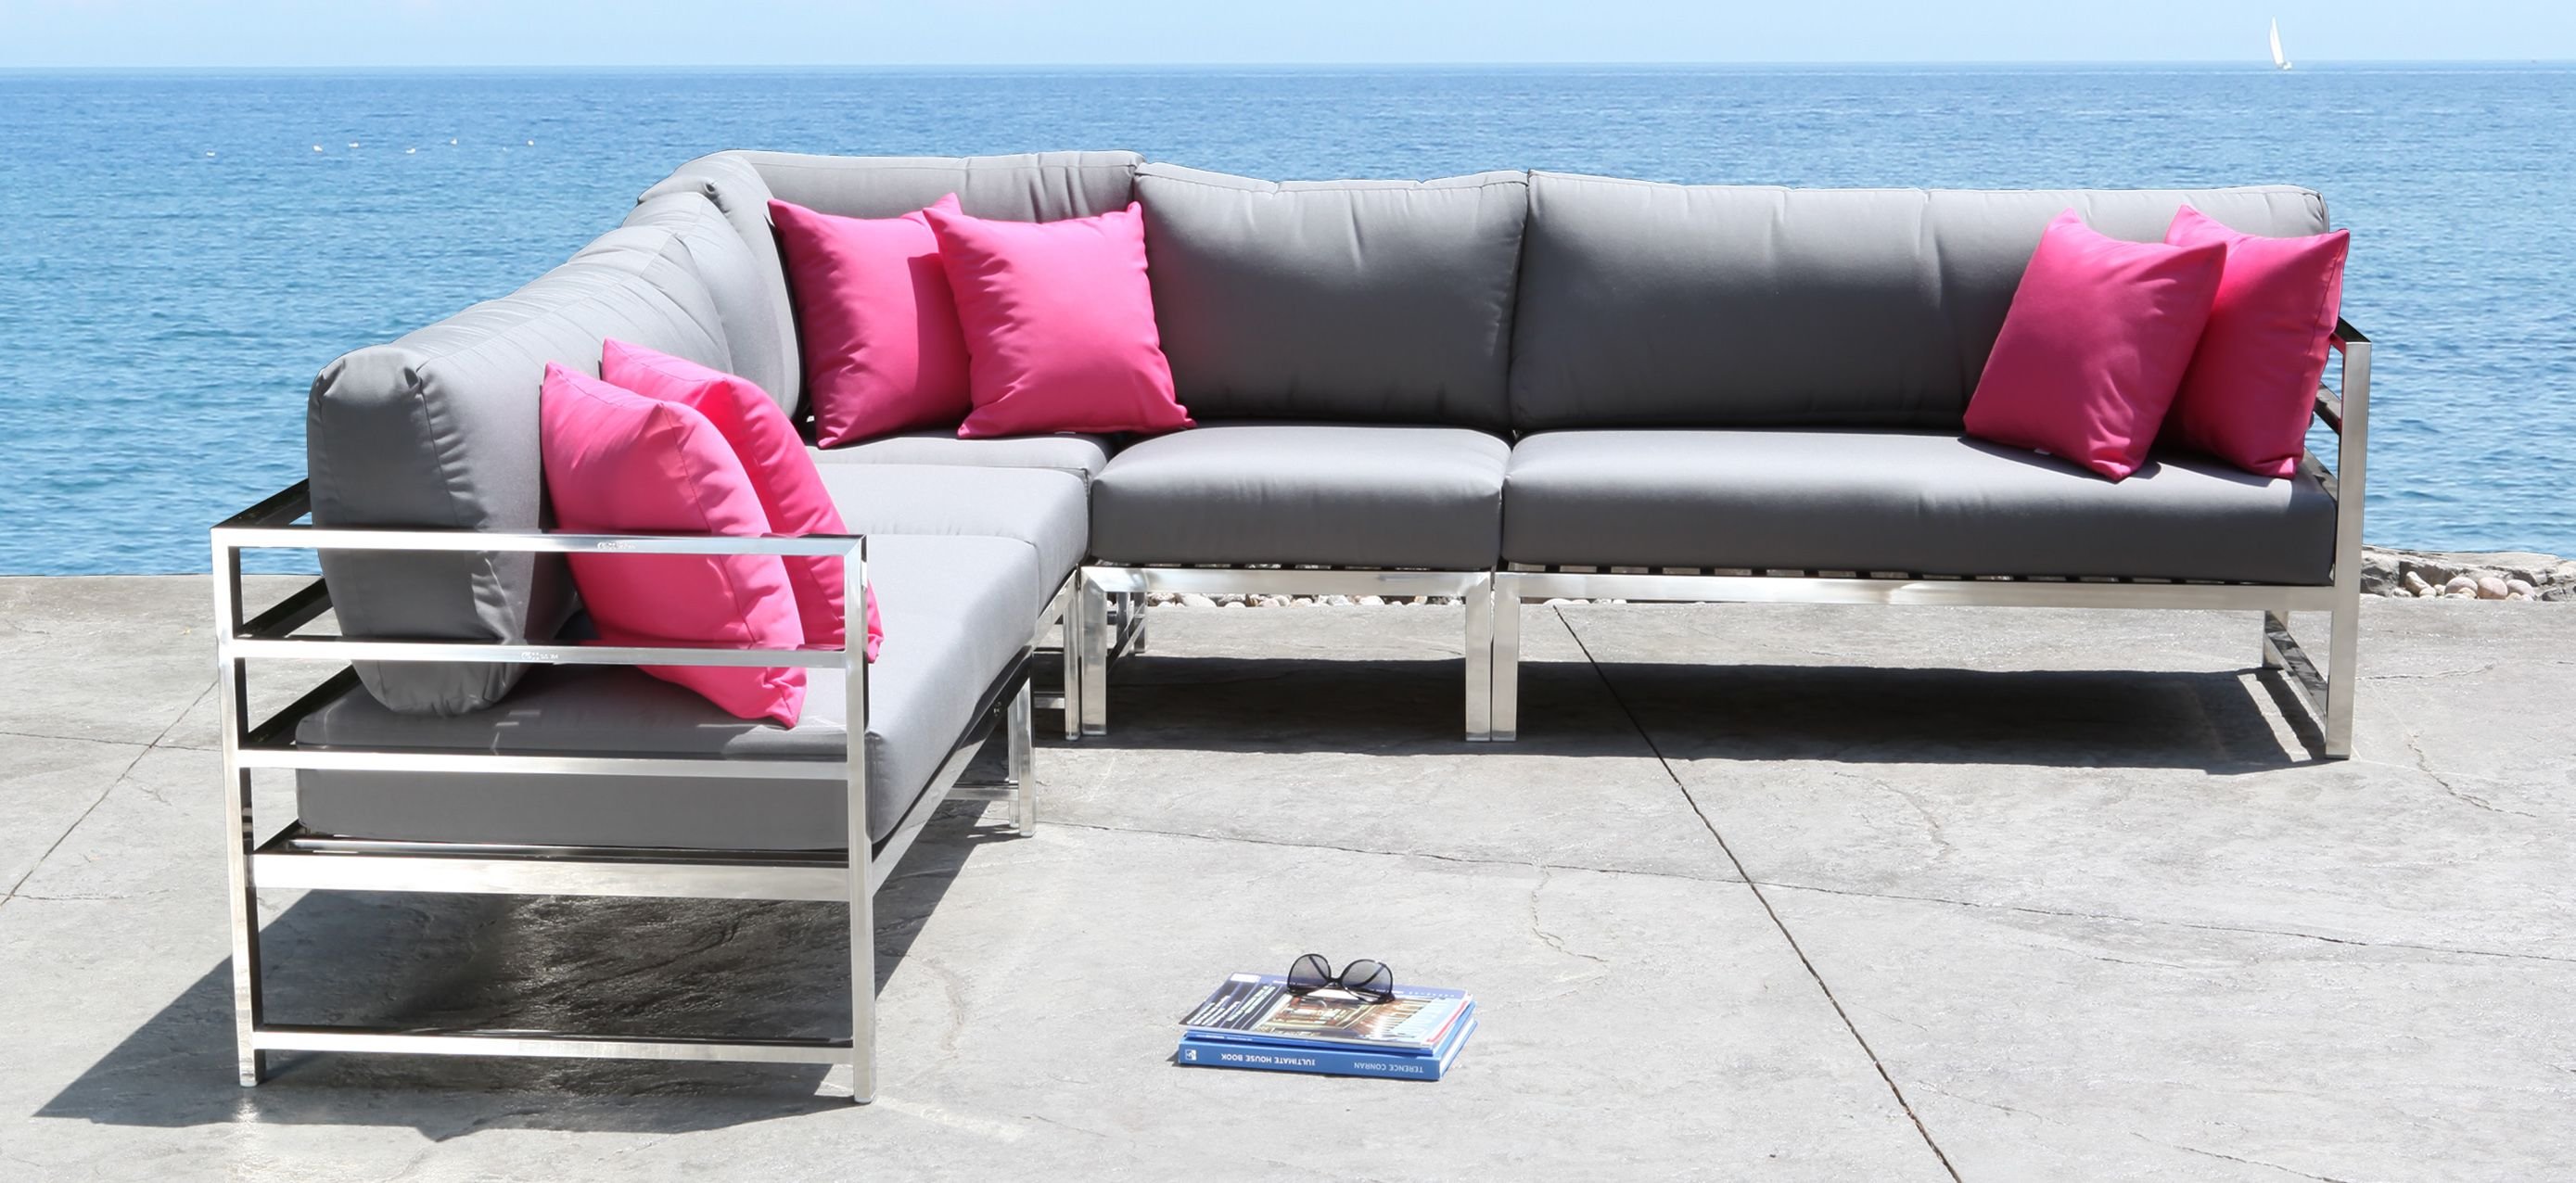 Soho mercial Grade Stainless Steel Patio Furniture Outdoor